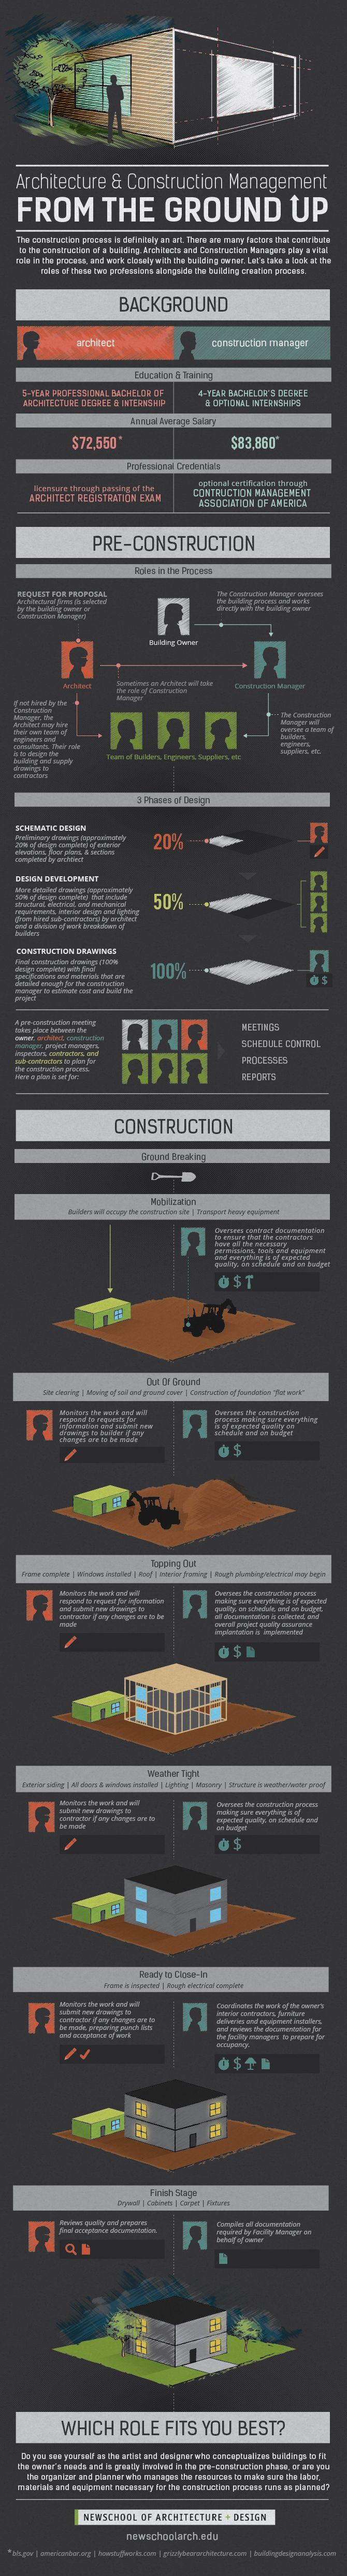 Infographic Architecture vs Construction Management NewSchool